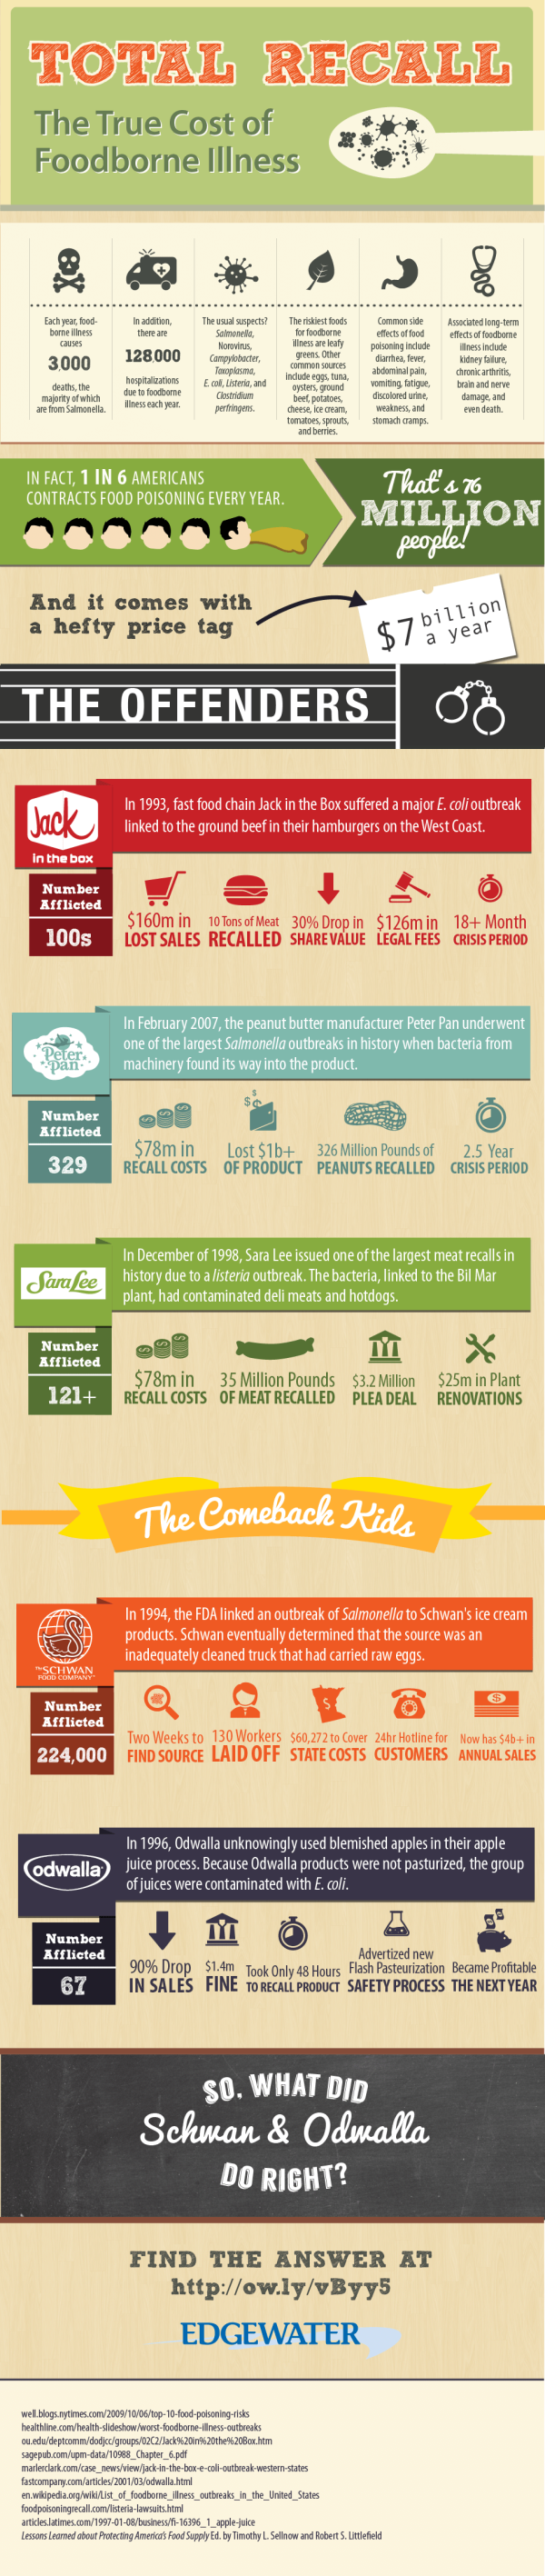 Total Recall: The True Cost of Foodborne Illness infographic for disaster recovery and product recalls